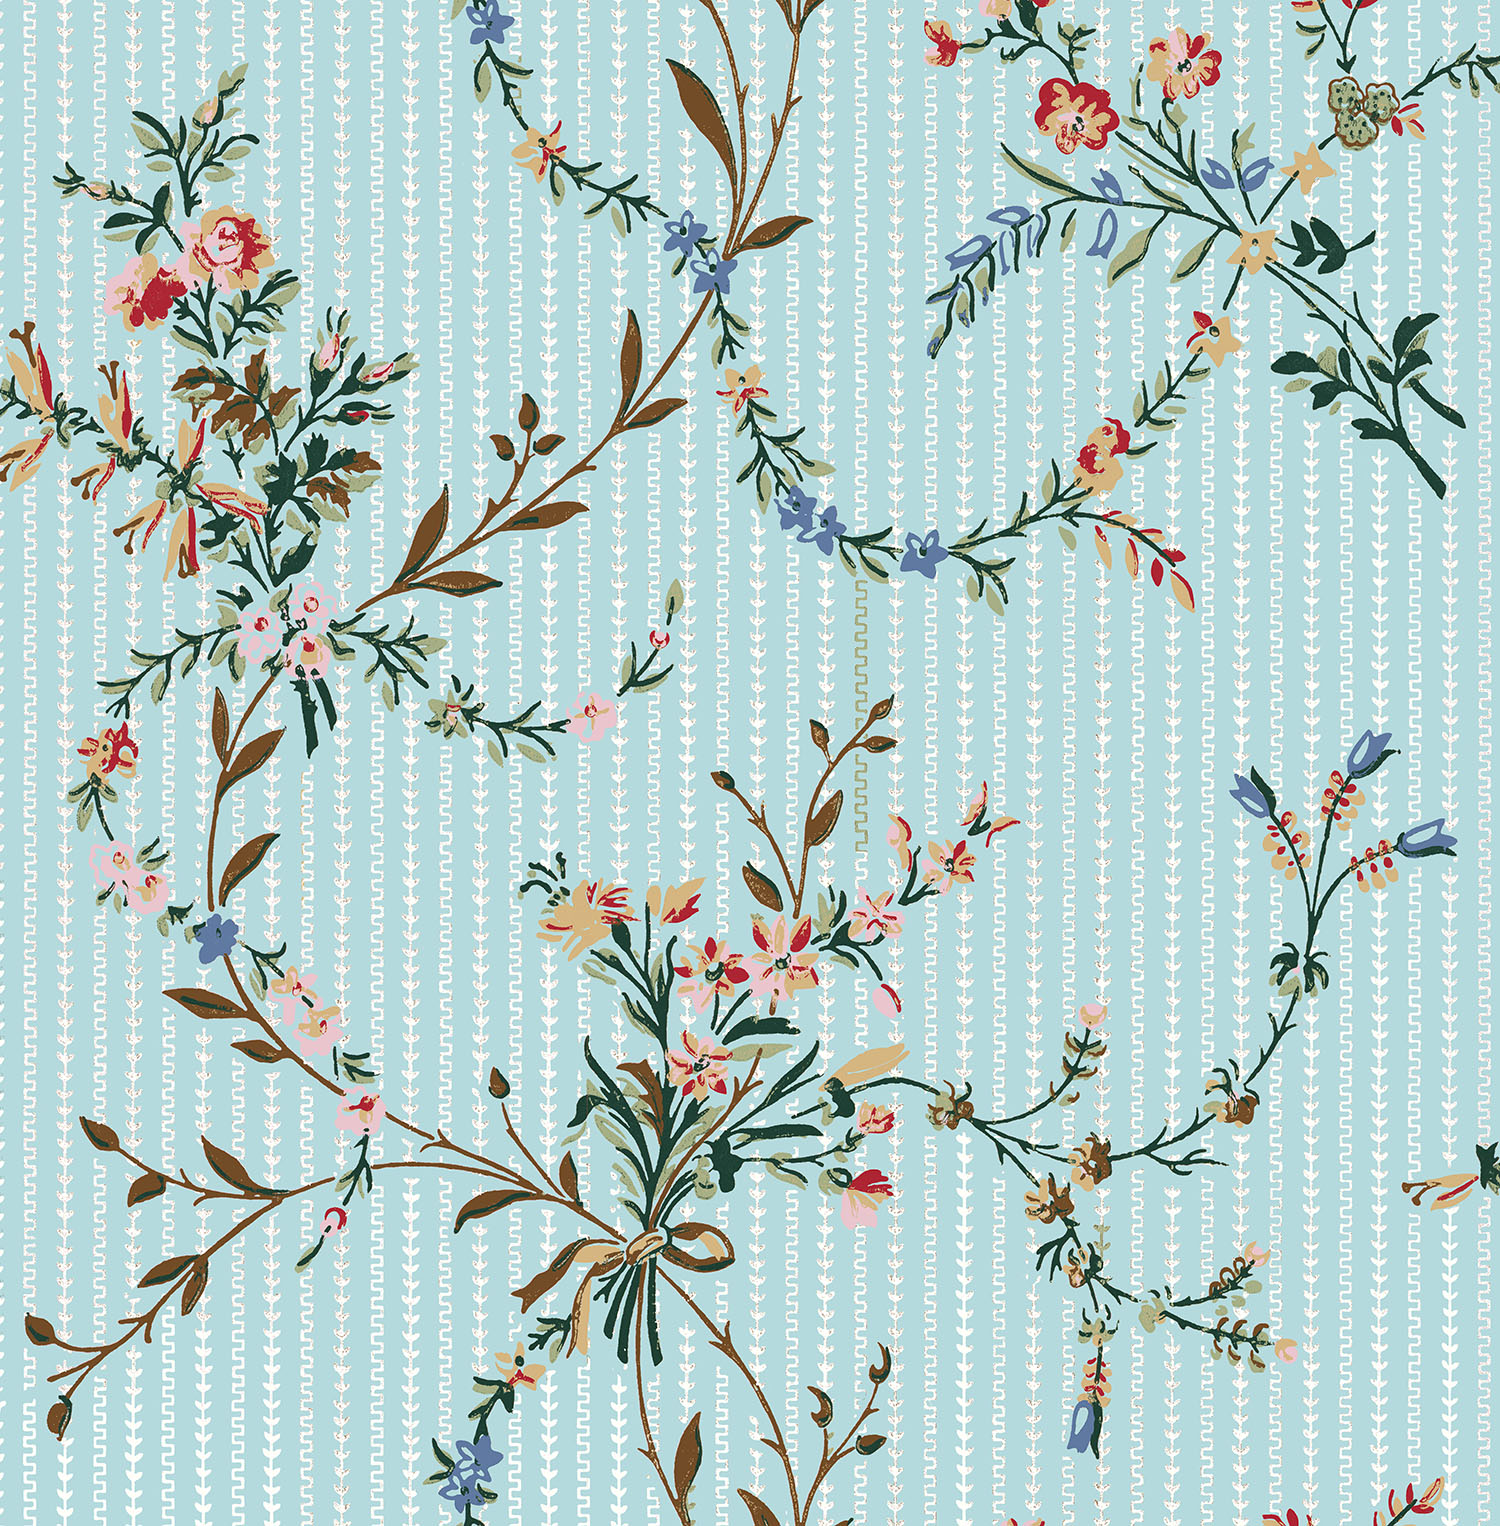 WH 203 New England Floral